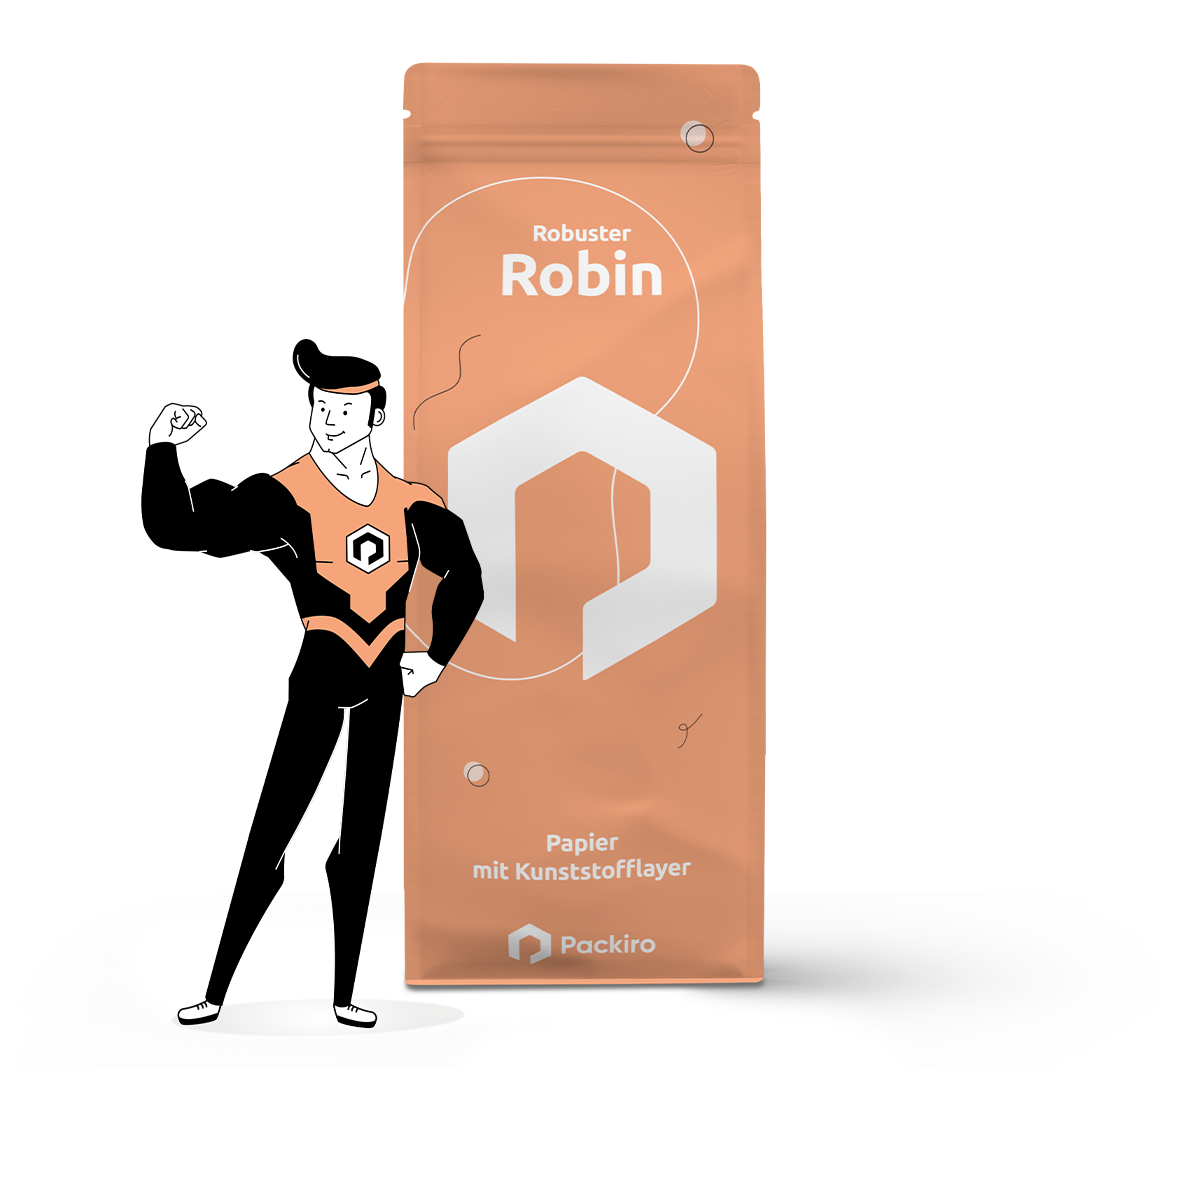 High-Protection Papierpouch - Robuster Robin - Packiro